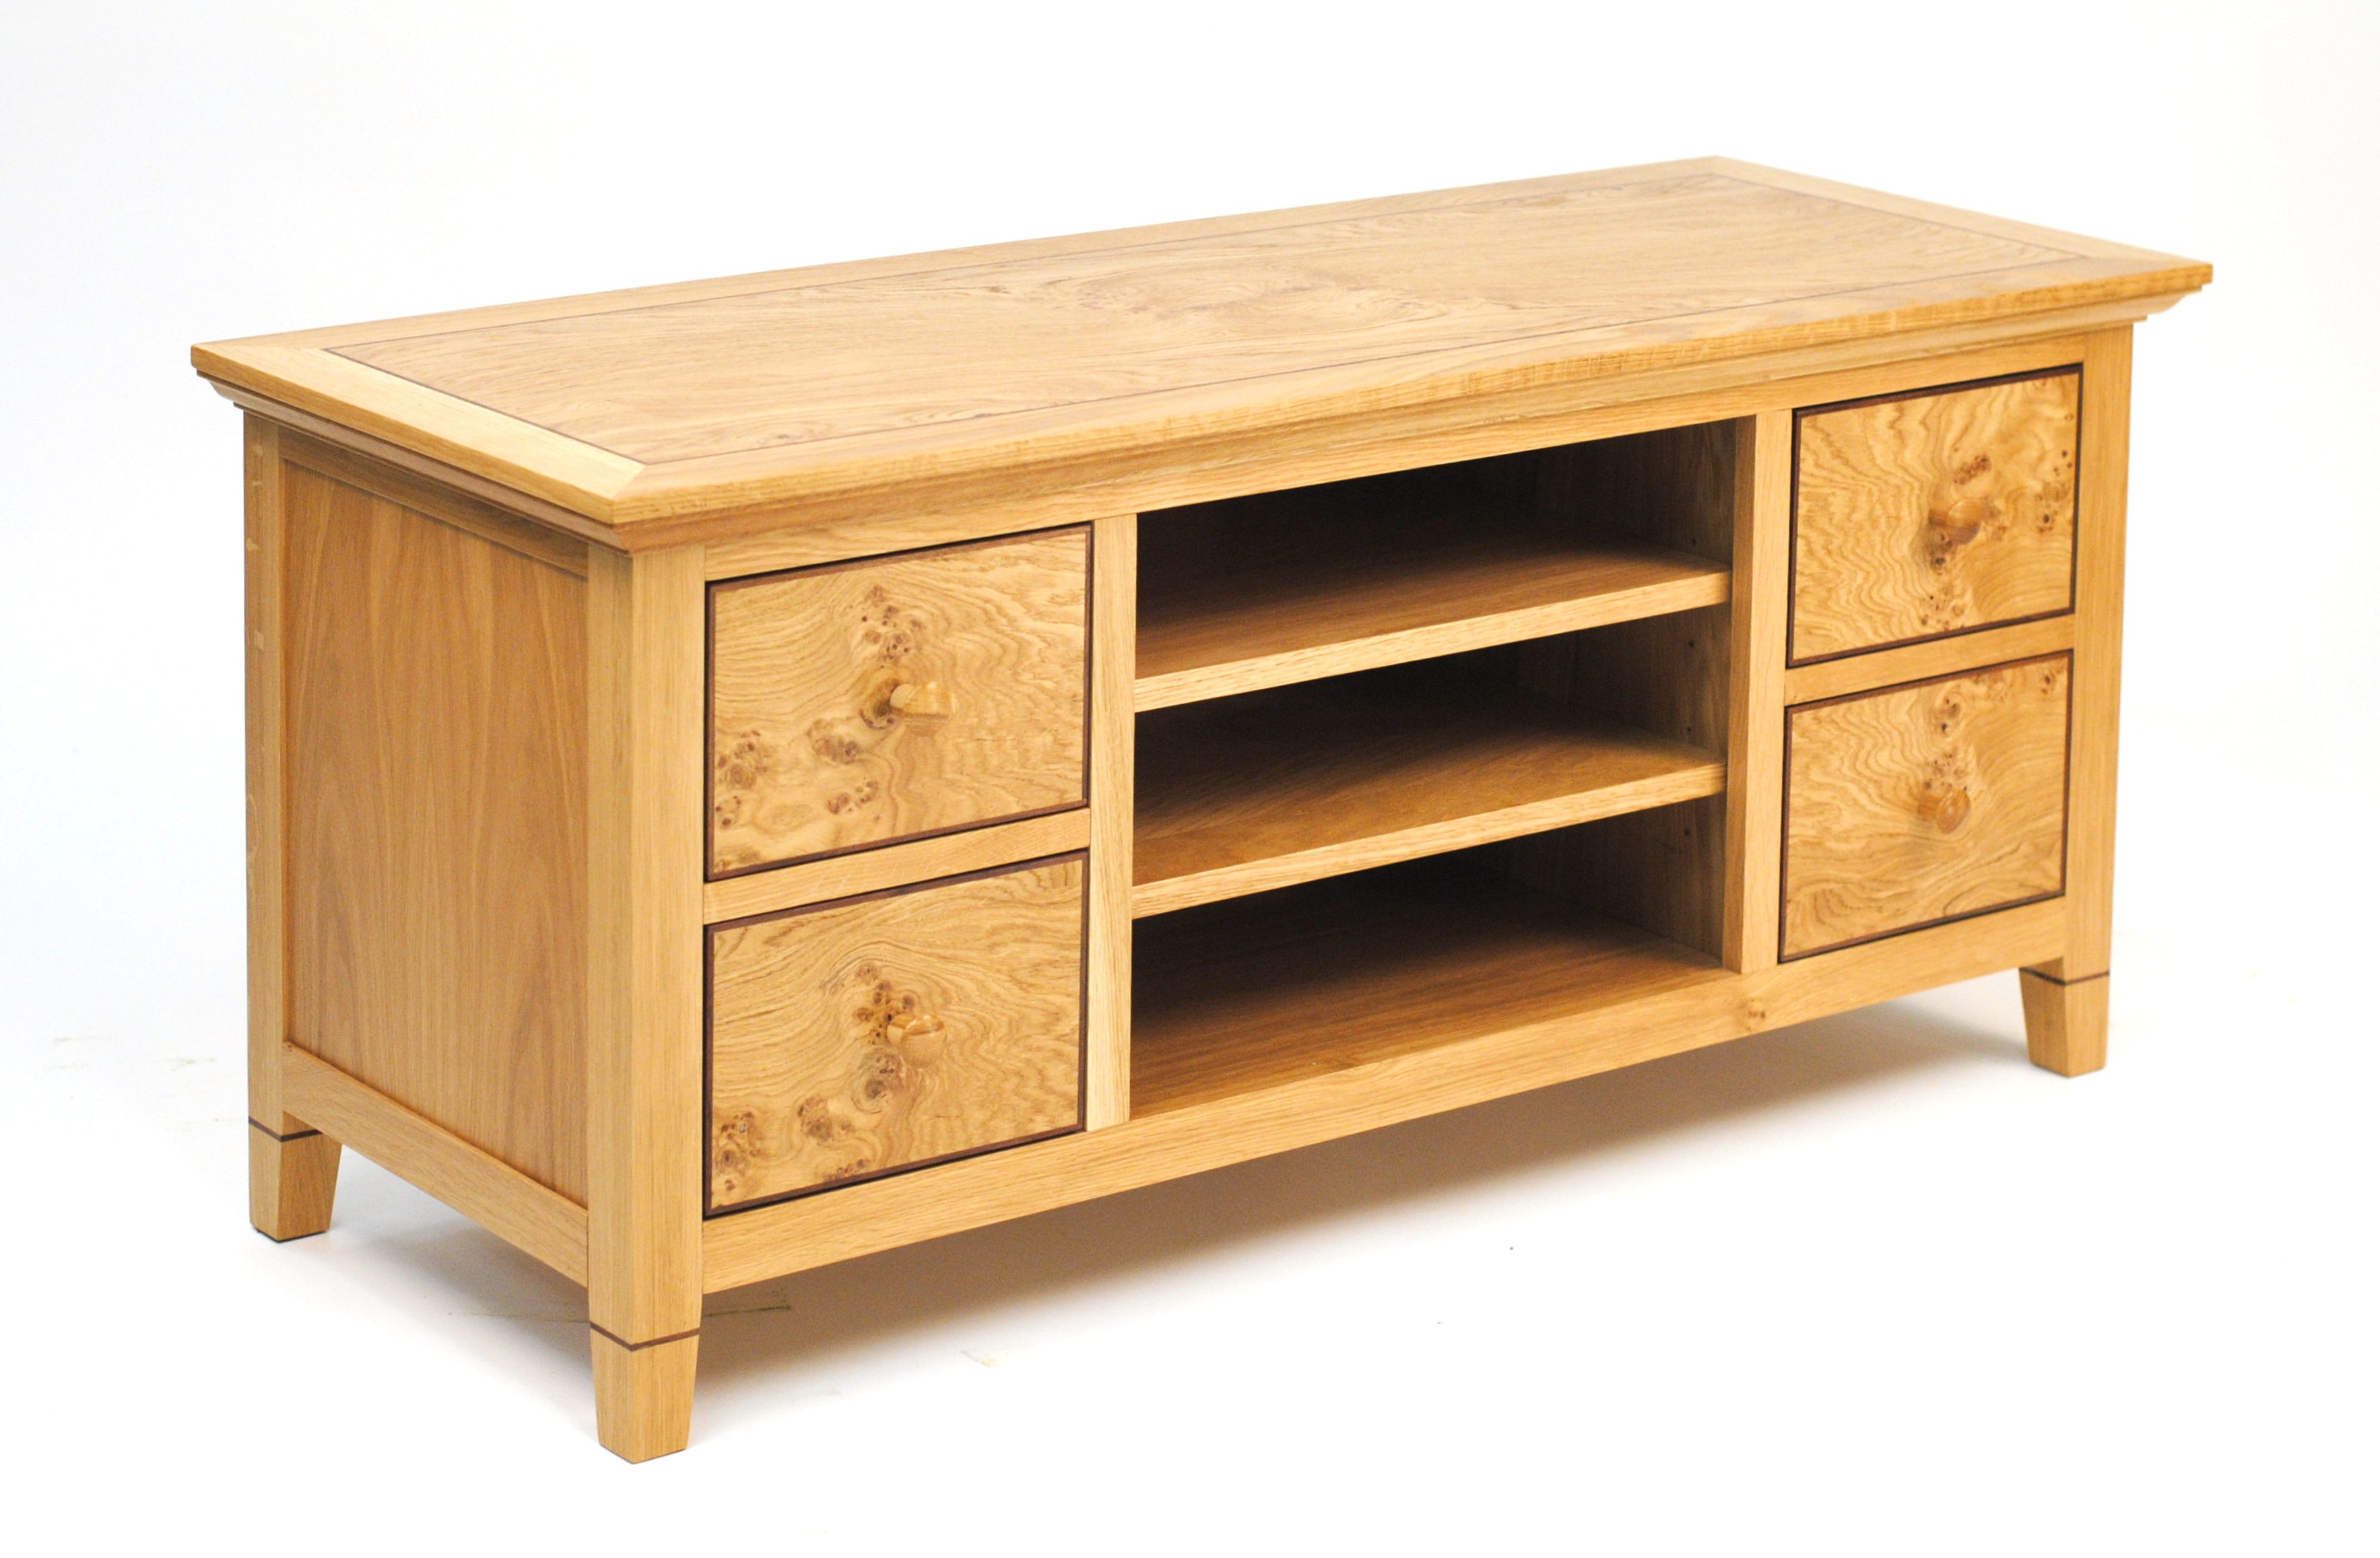 dvd drawers furniture ebay itm storage chest solid cd walnut cabinet home linea